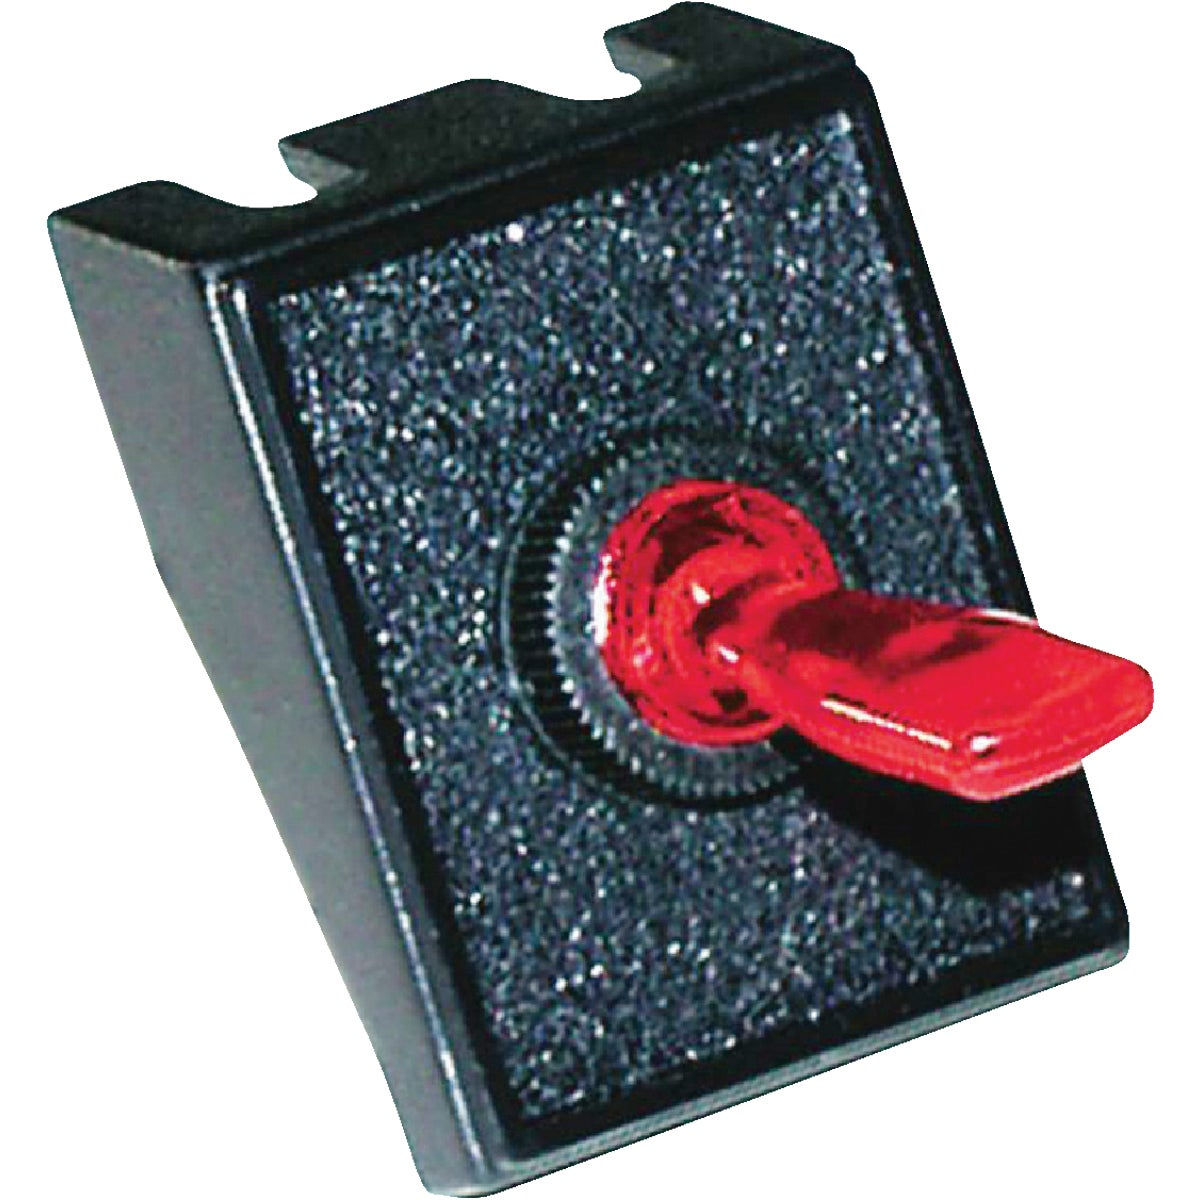 RED TOGGLE SWITCH - 41210 by G B Electrical Inc